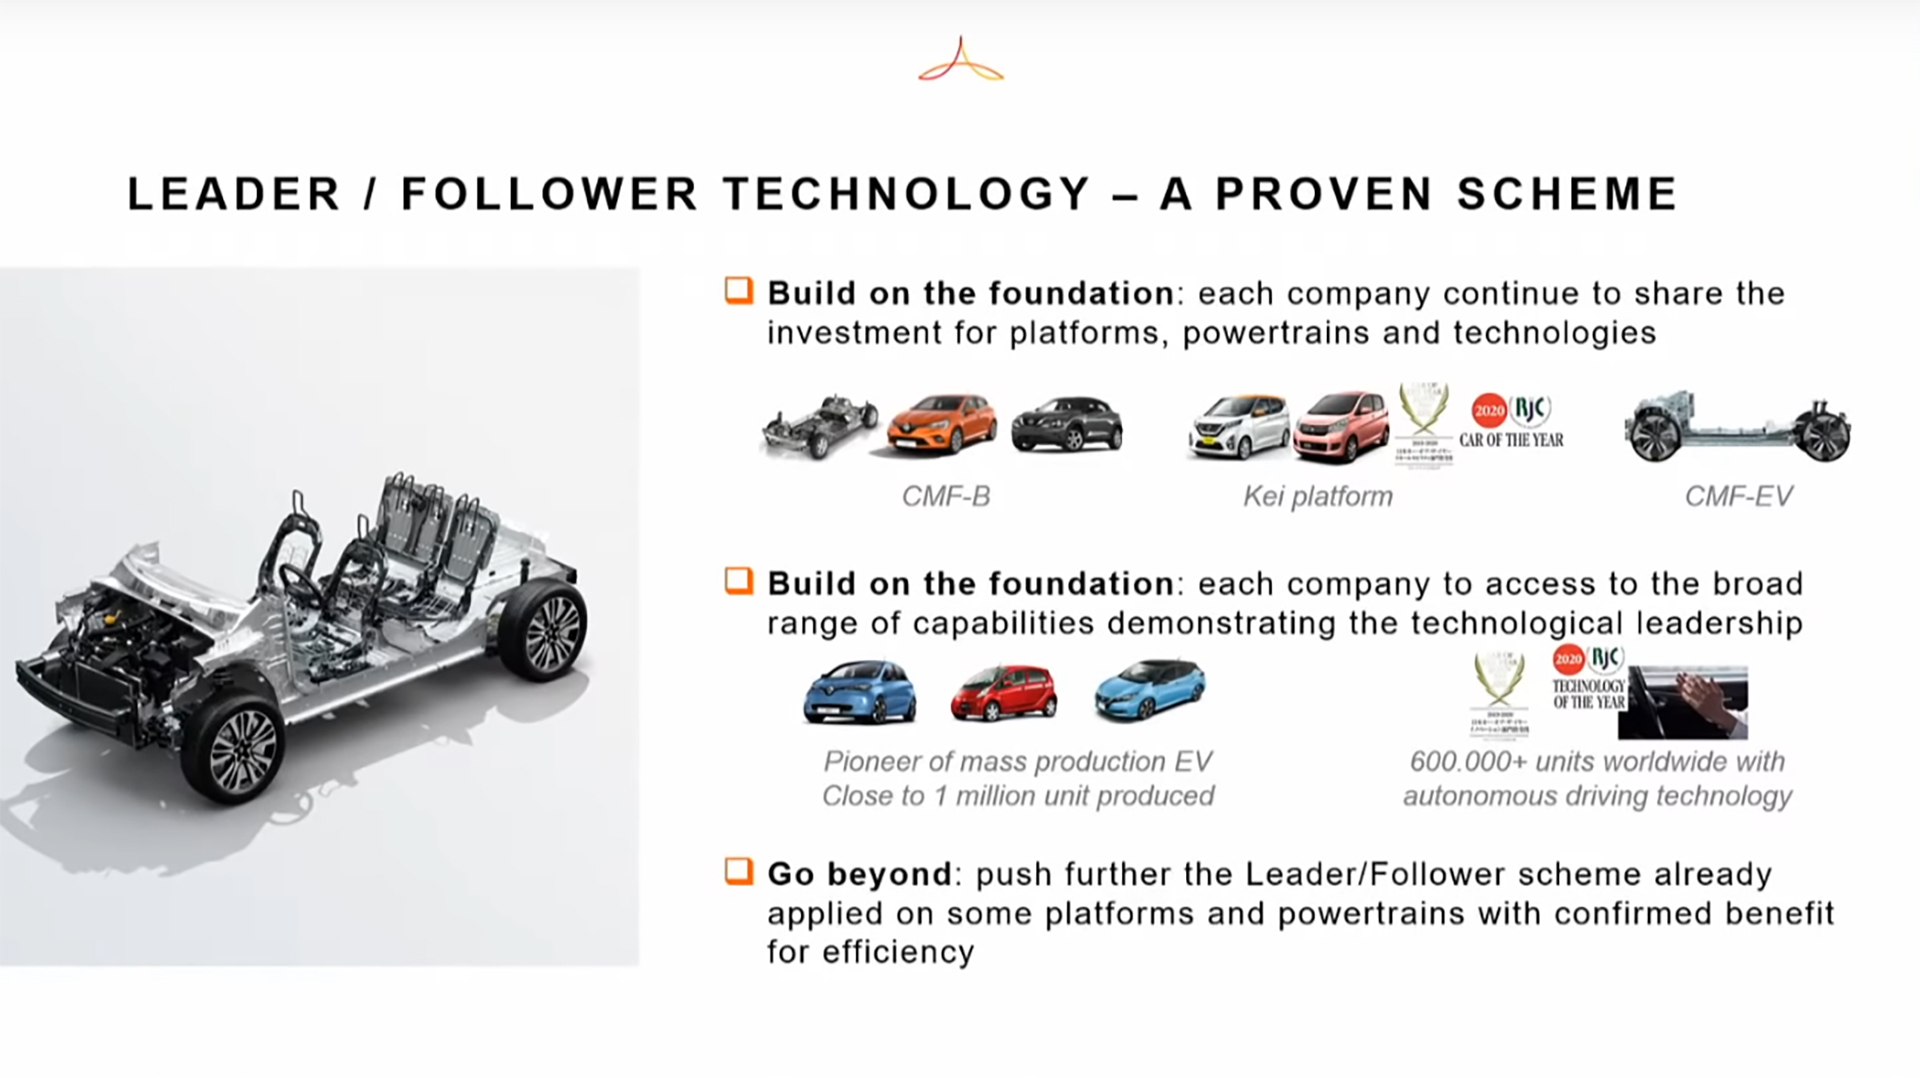 Alliance Renault Nissan Mitsubishi - 2020 - Alliance new cooperation business model - leader/follower technology